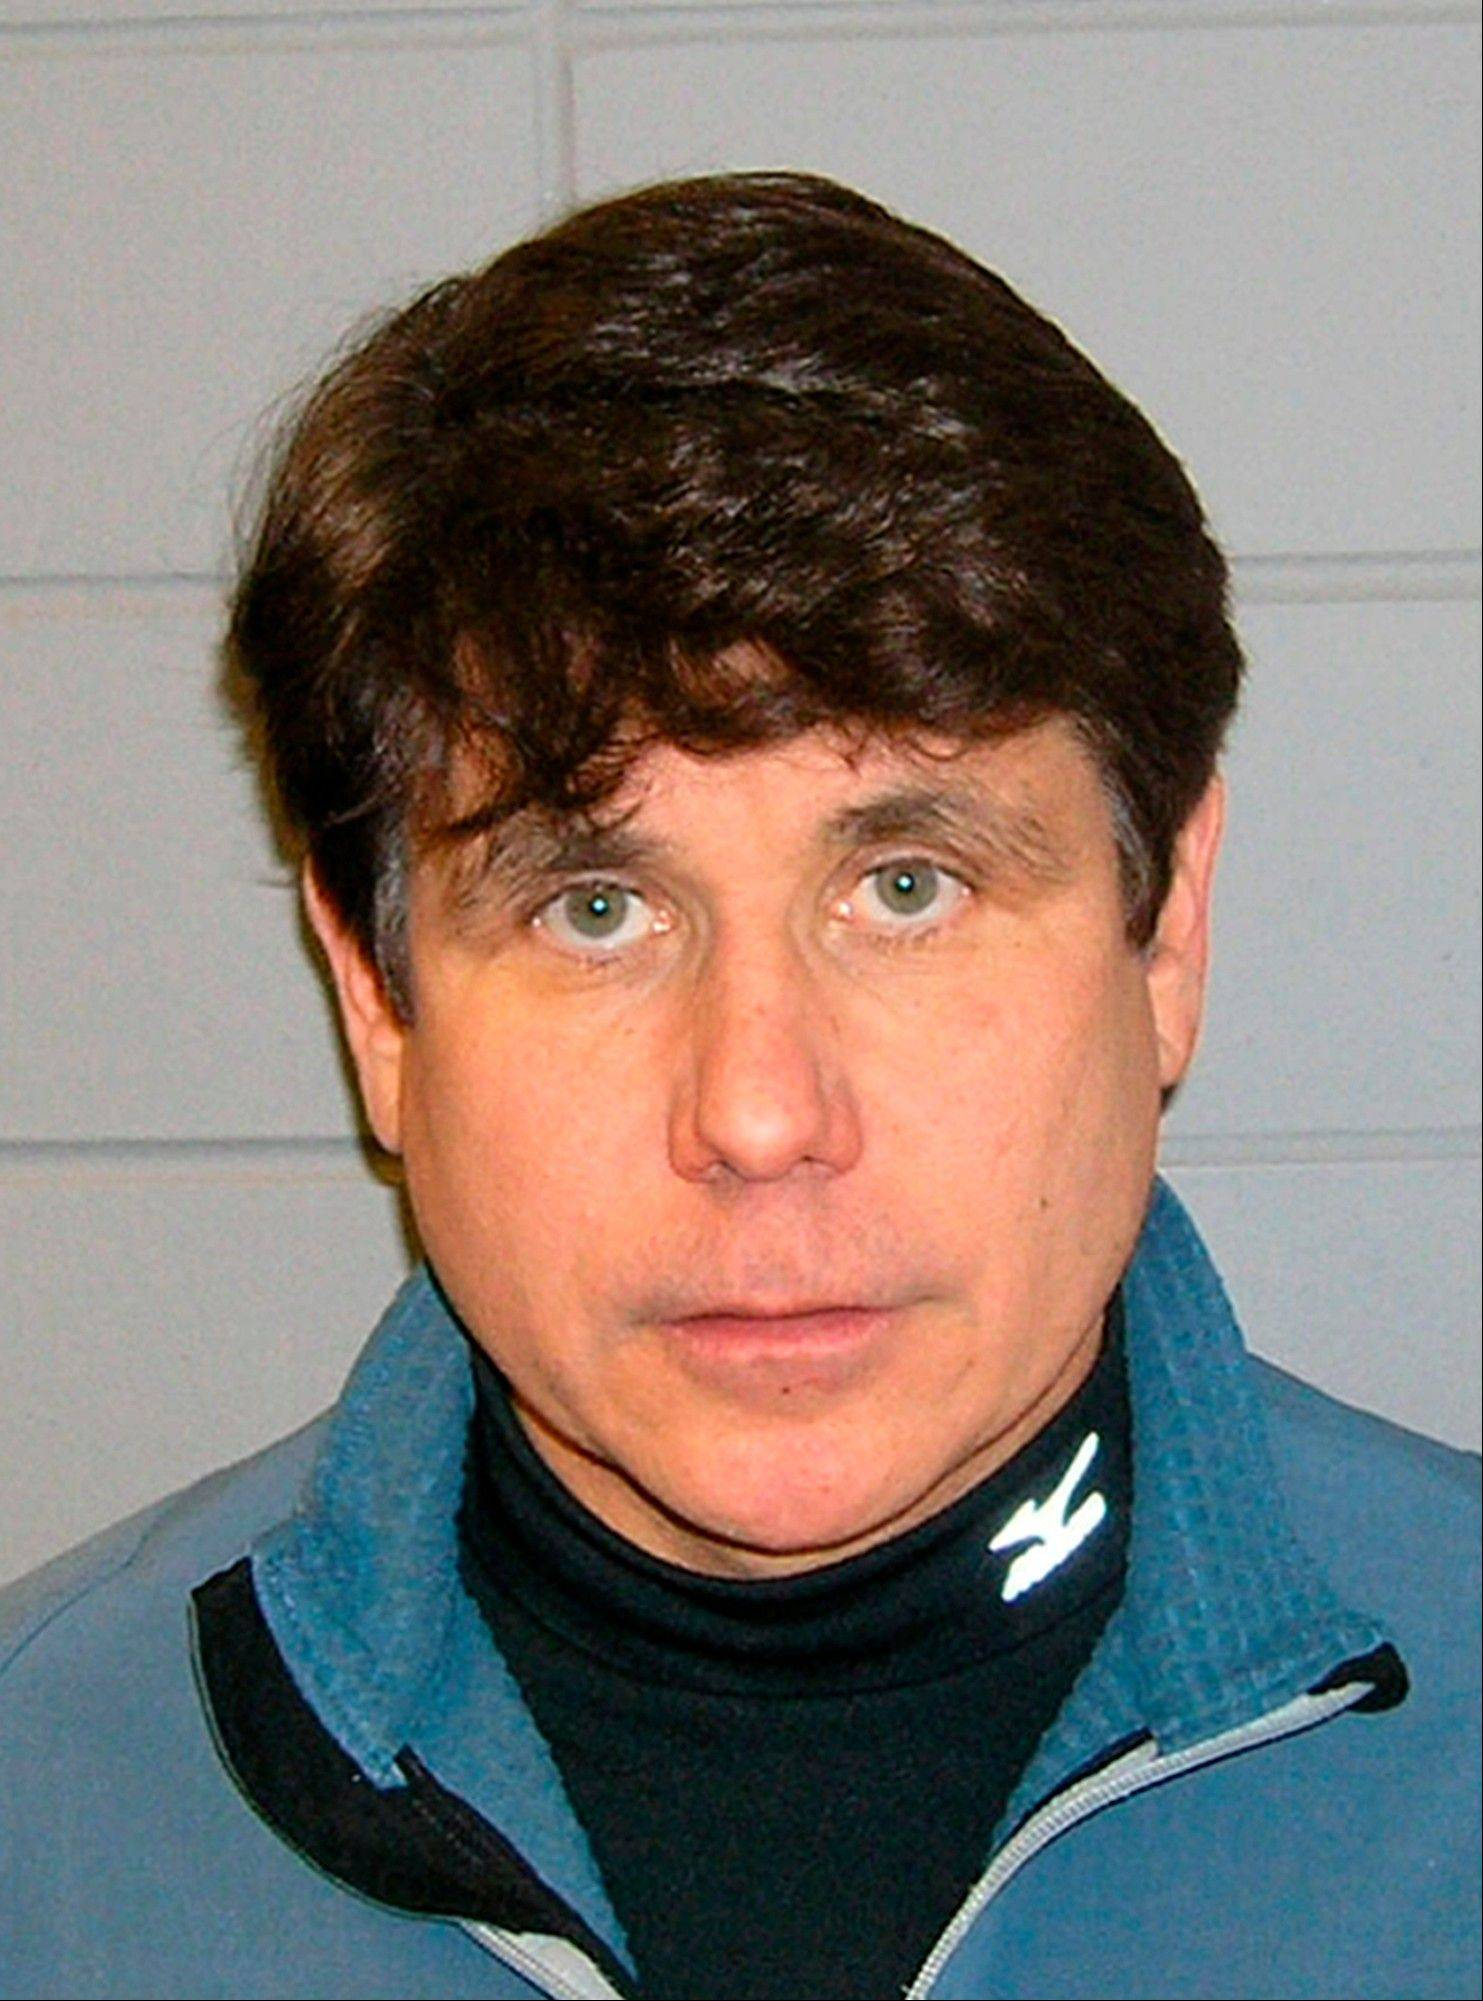 Rod Blagojevich was convicted of numerous corruption charges in 2011, including allegations that he tried to sell or trade President Barack Obama's old Senate seat.